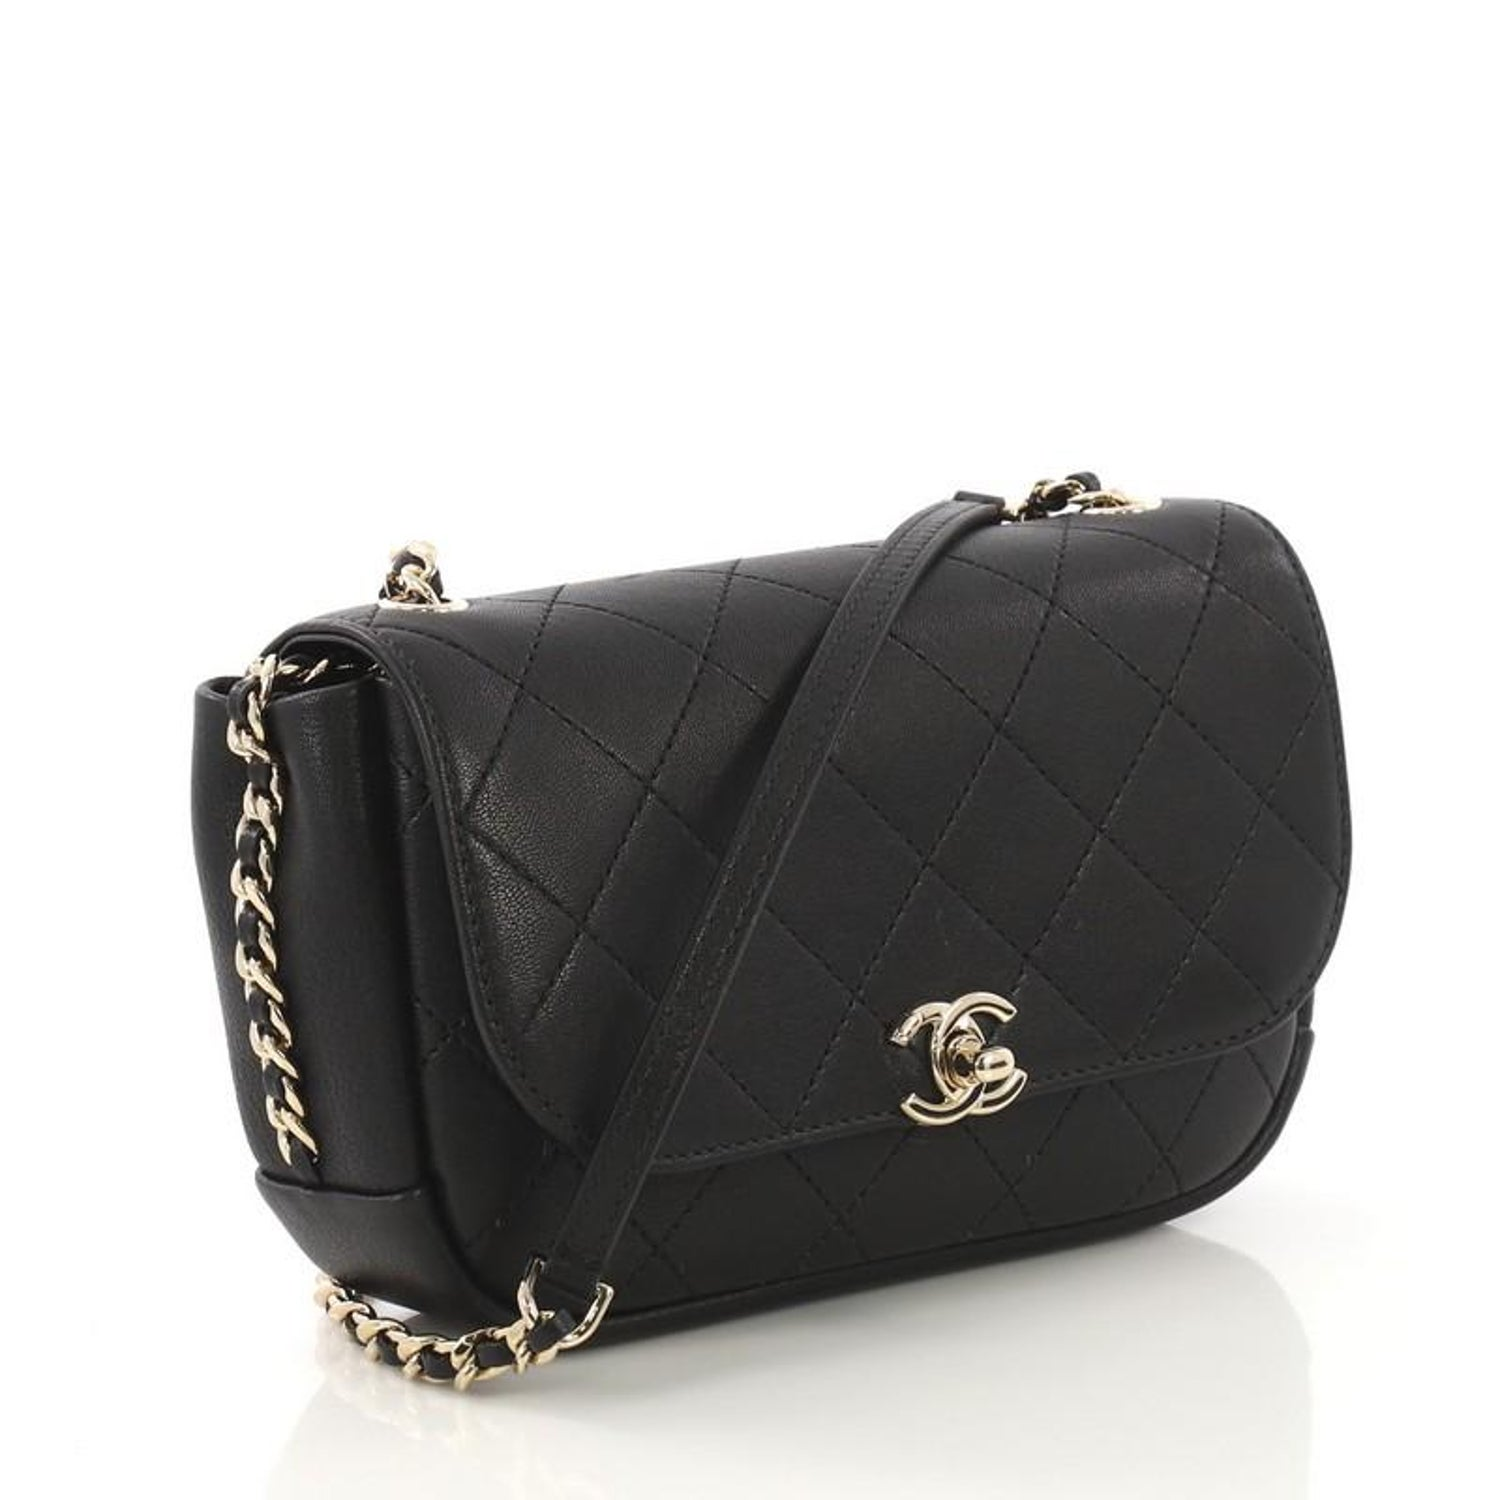 96b092c9bb1f Chanel Casual Trip Flap Bag Quilted Lambskin Small For Sale at 1stdibs